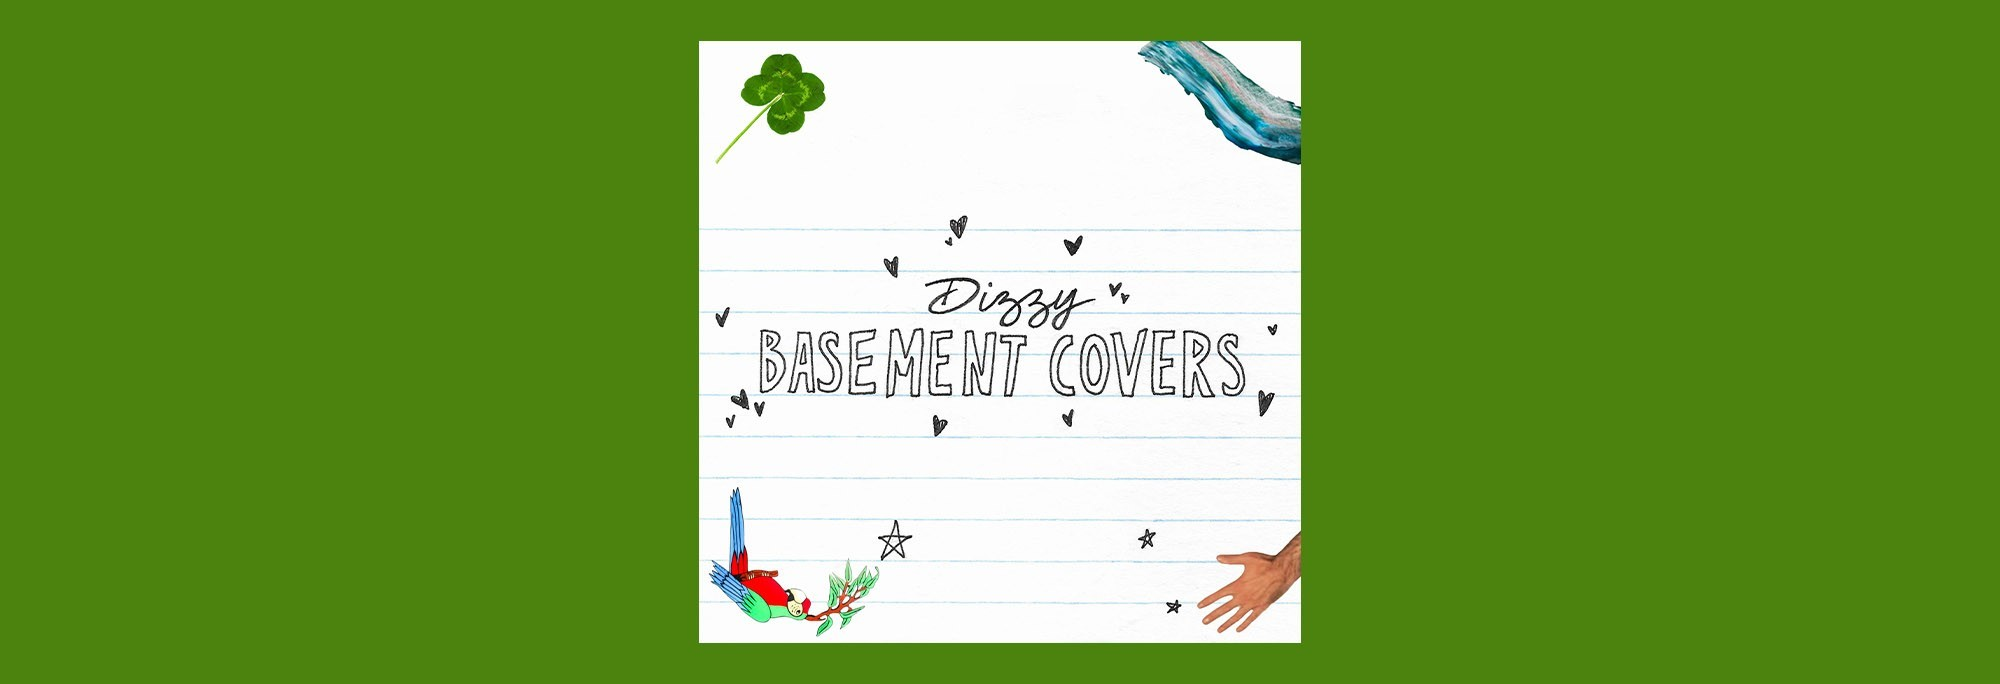 Dizzy - Basement Covers EP